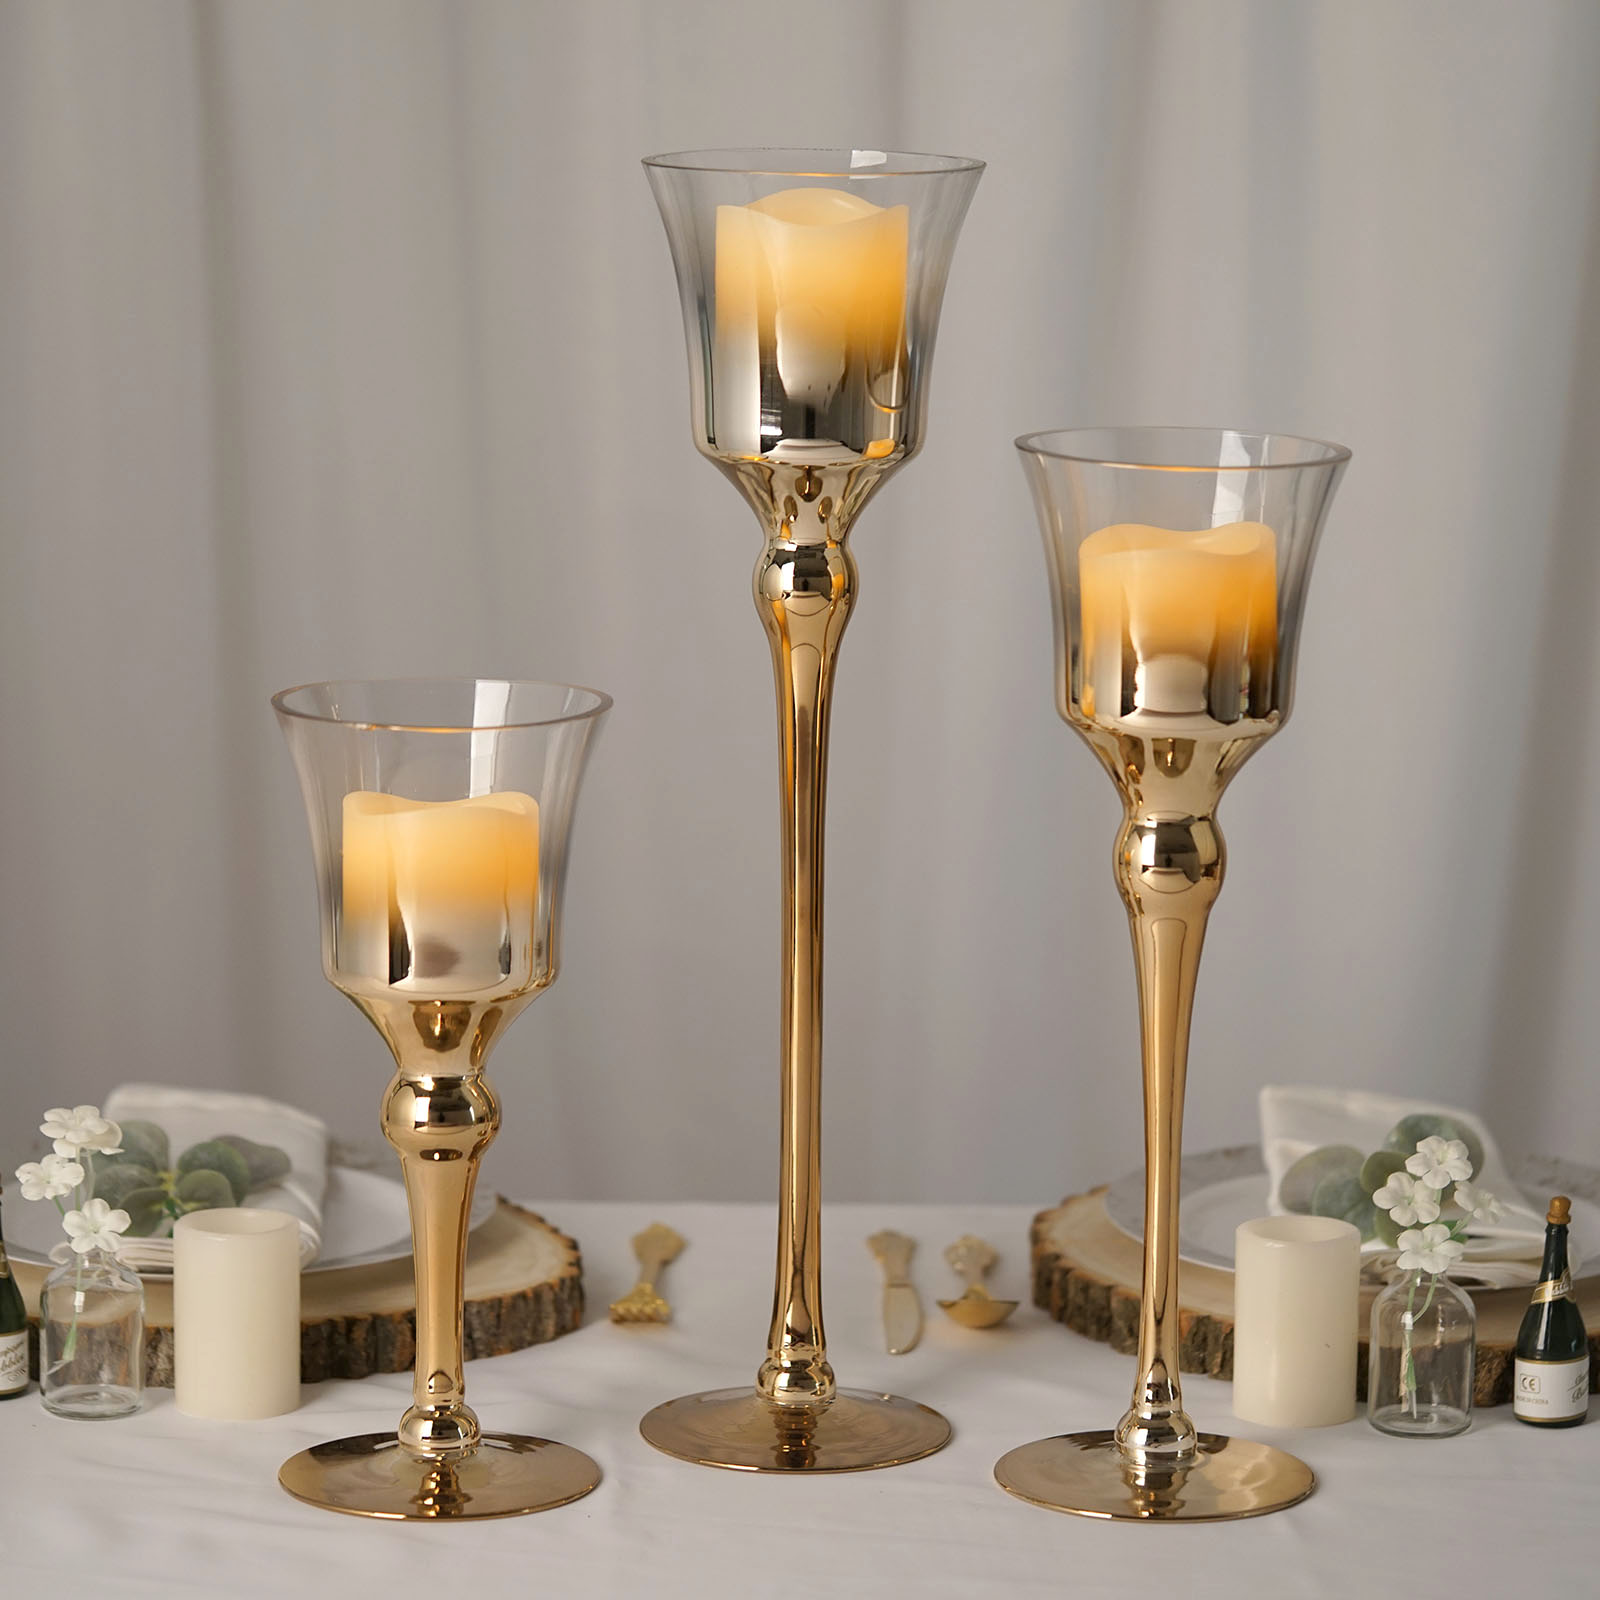 3 Ombre Wine Glass Pillar Candle Holders Home Gift Wedding Centerpieces Sale Ebay